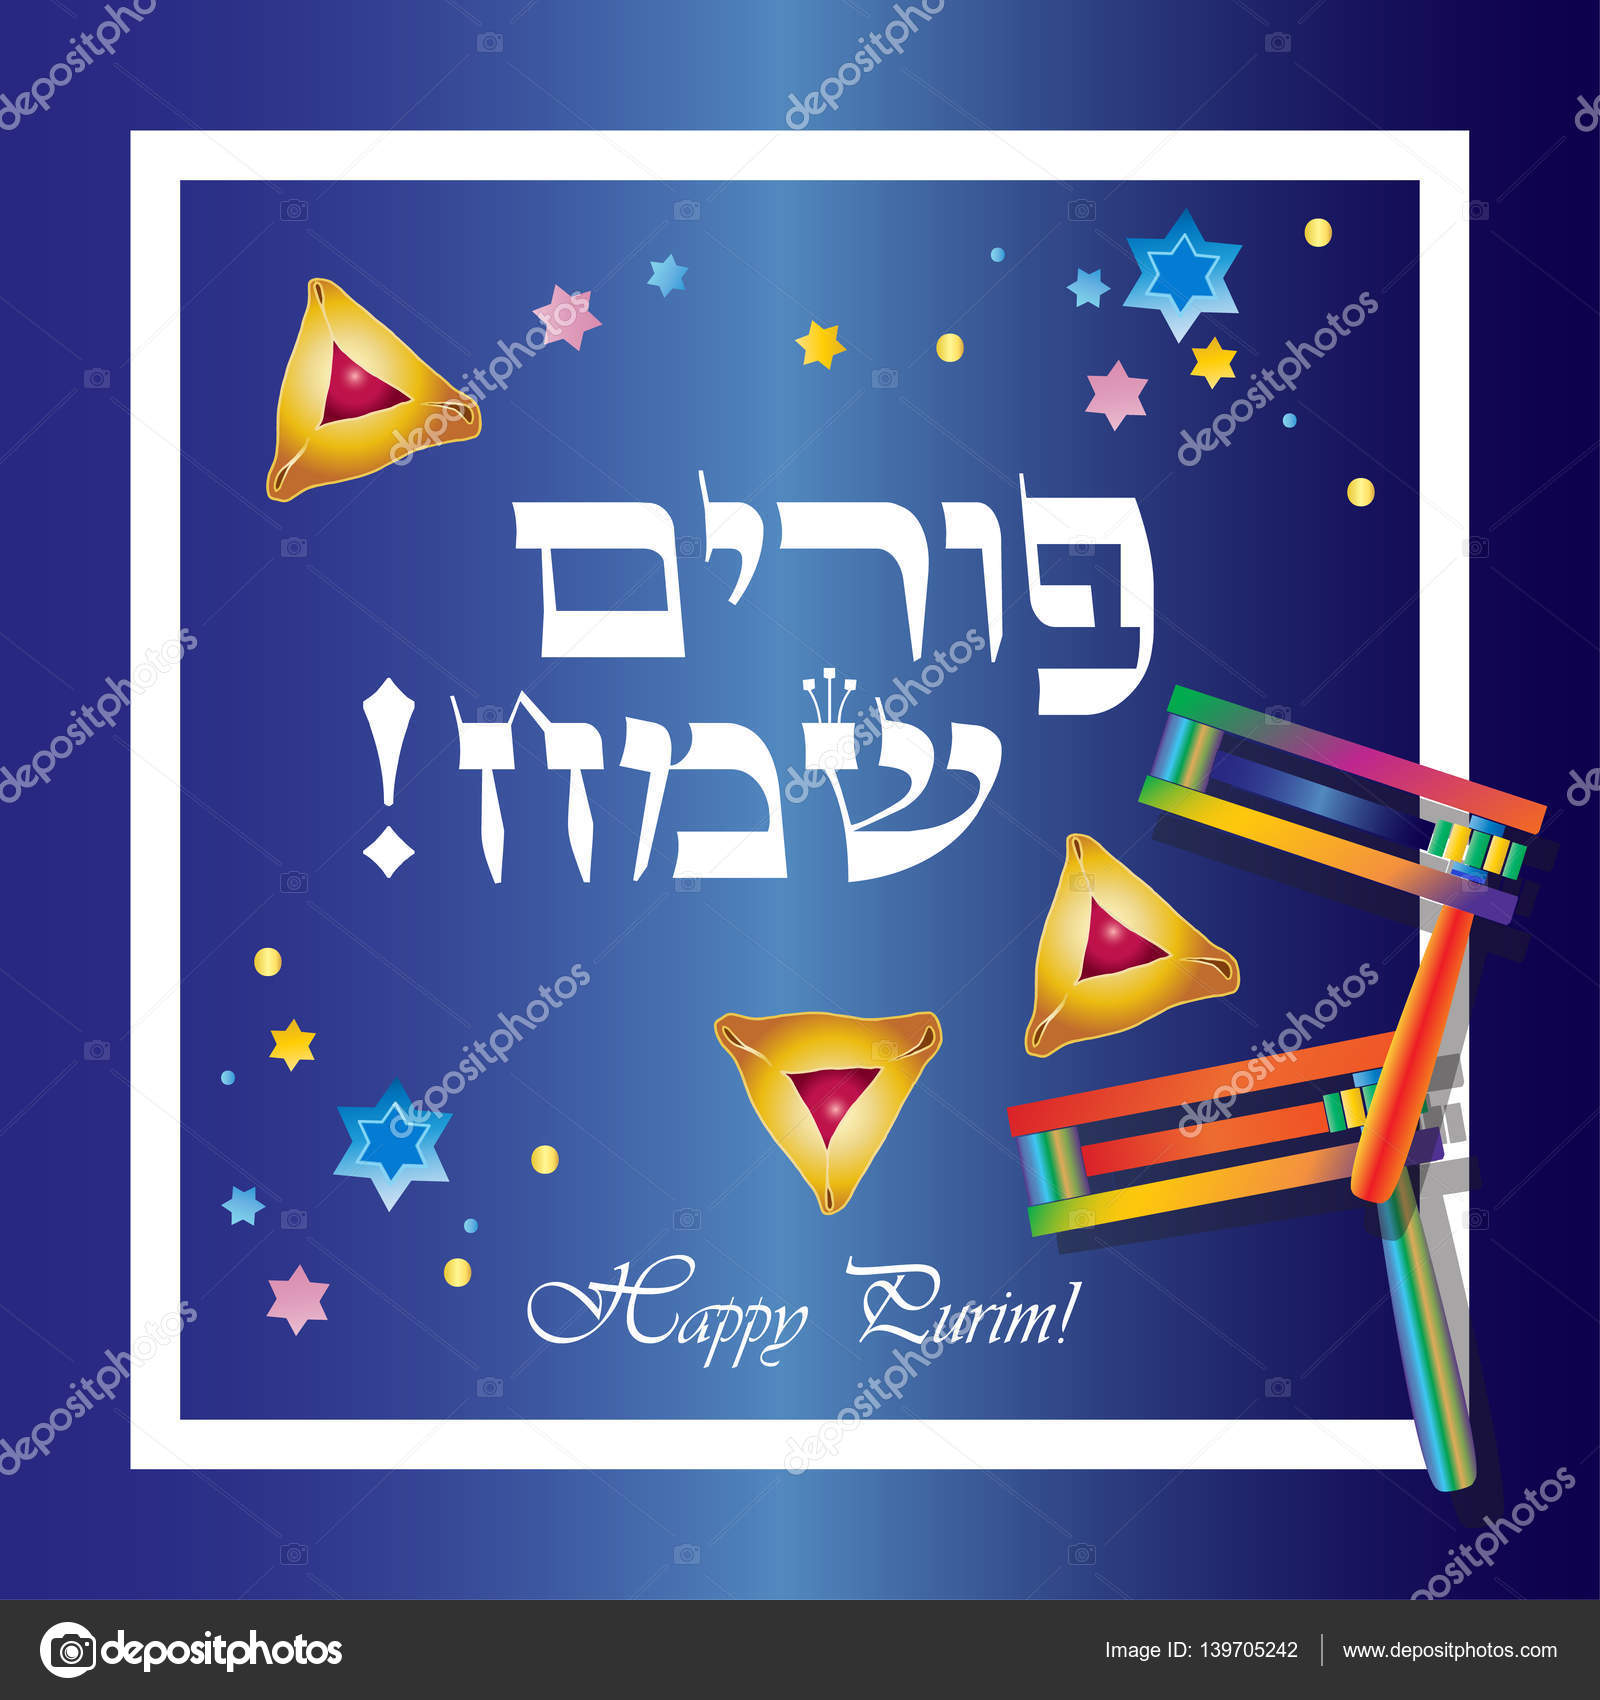 Happy purim greeting card translation from hebrew happy purim happy purim greeting card translation from hebrew happy purim purim jewish holiday poster m4hsunfo Image collections